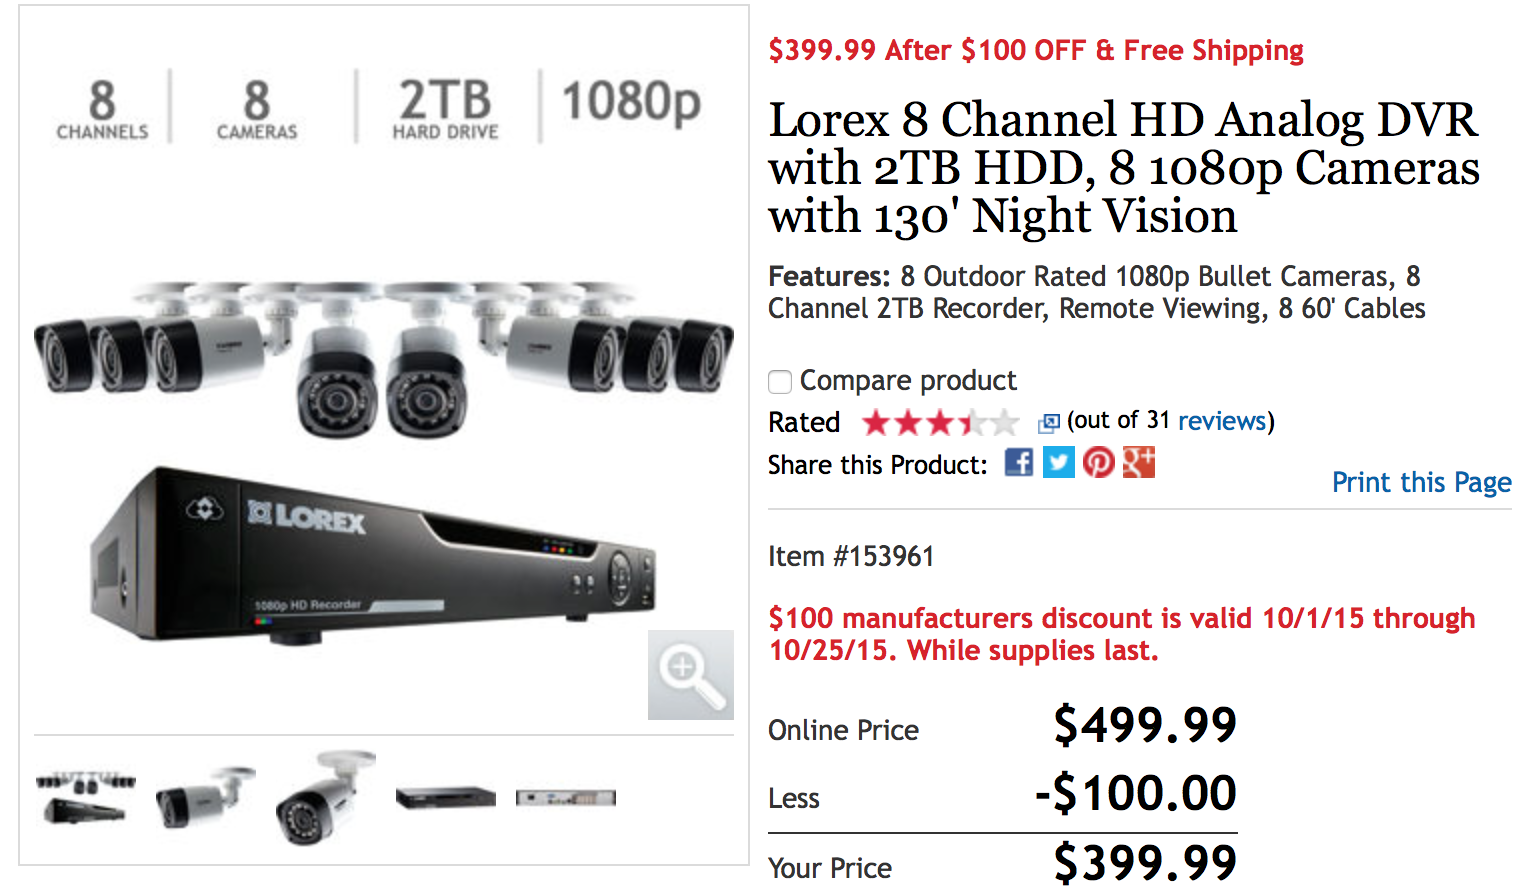 How Low Can Kit Pricing Go? $399 For 8 1080p Cameras And A